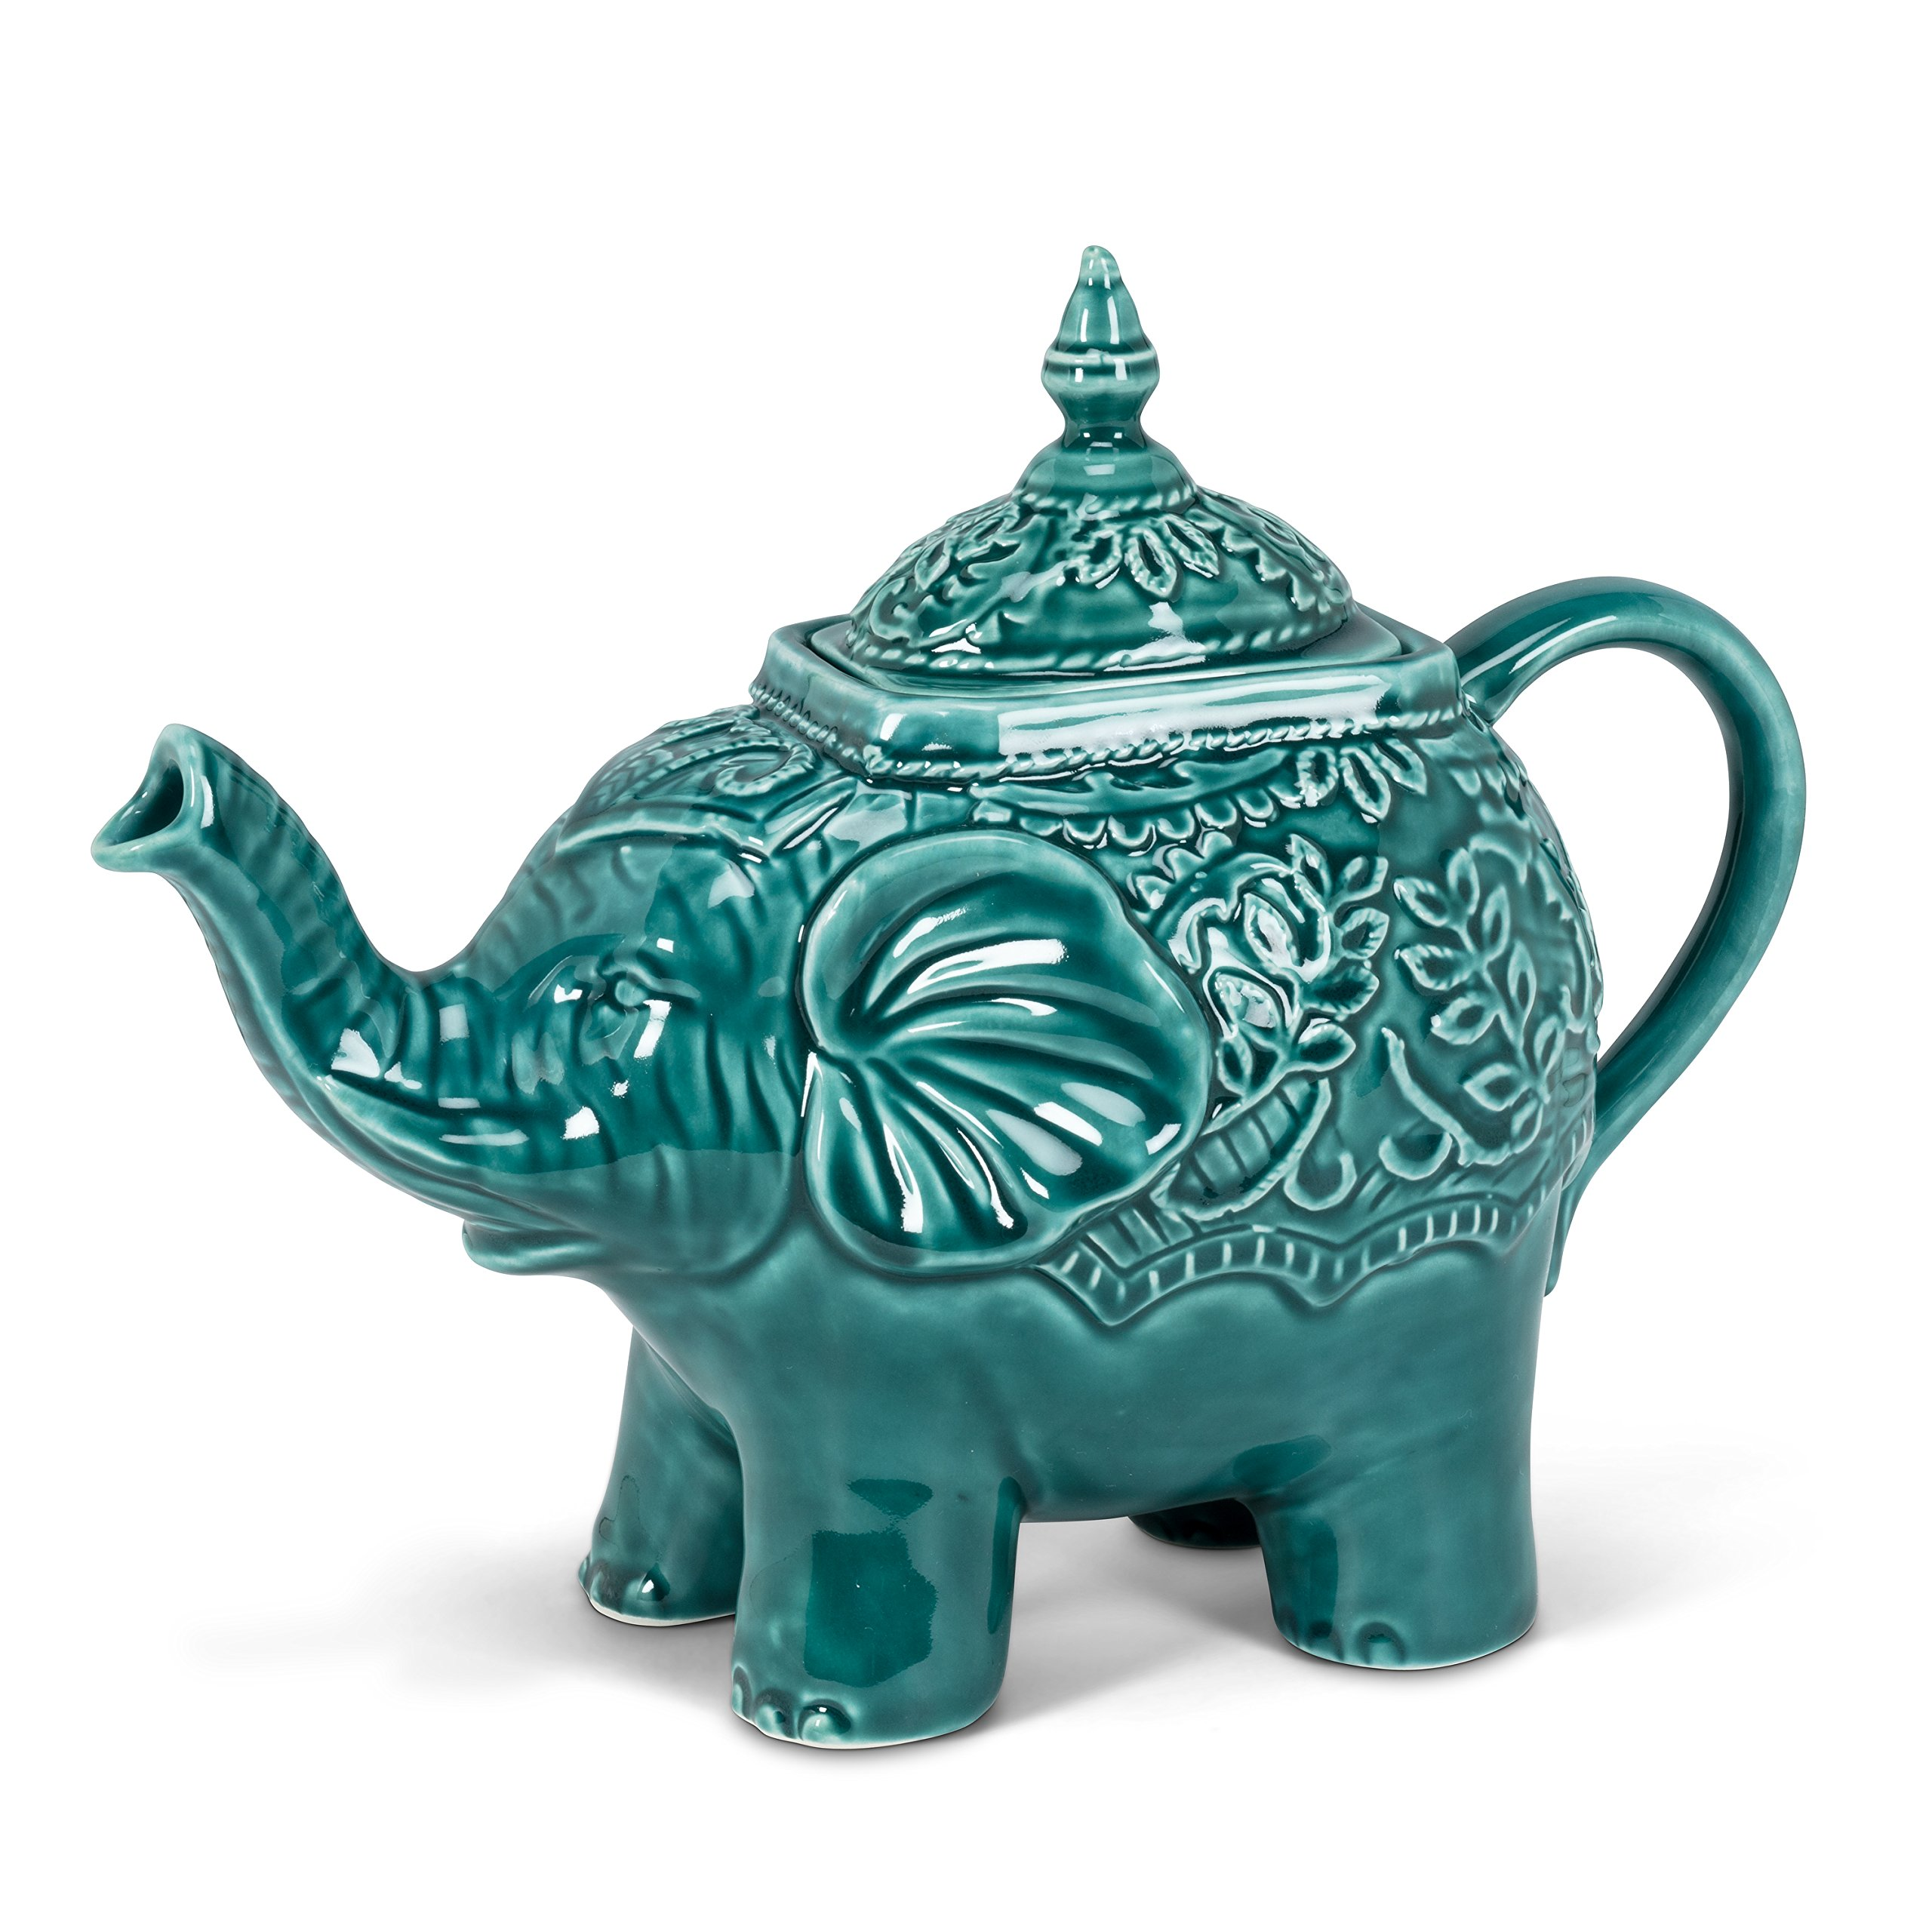 Abbott Collection 27-Mahout/Teal Ornate Elephant Teapot-Teal-10 L